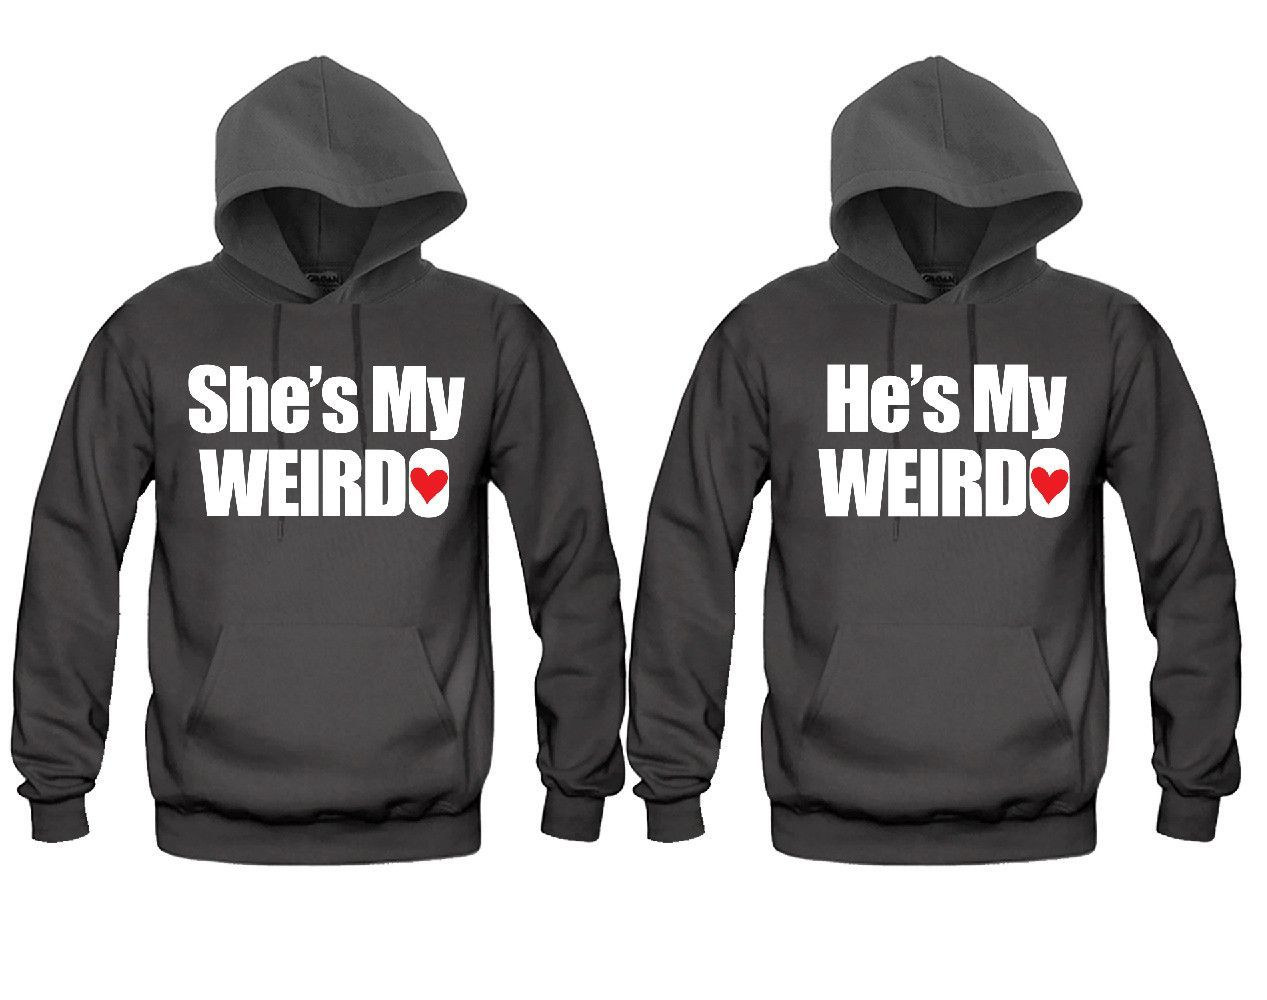 Shes My Weirdo and Hes My Weirdo Cute Matching Hoodies for Couples